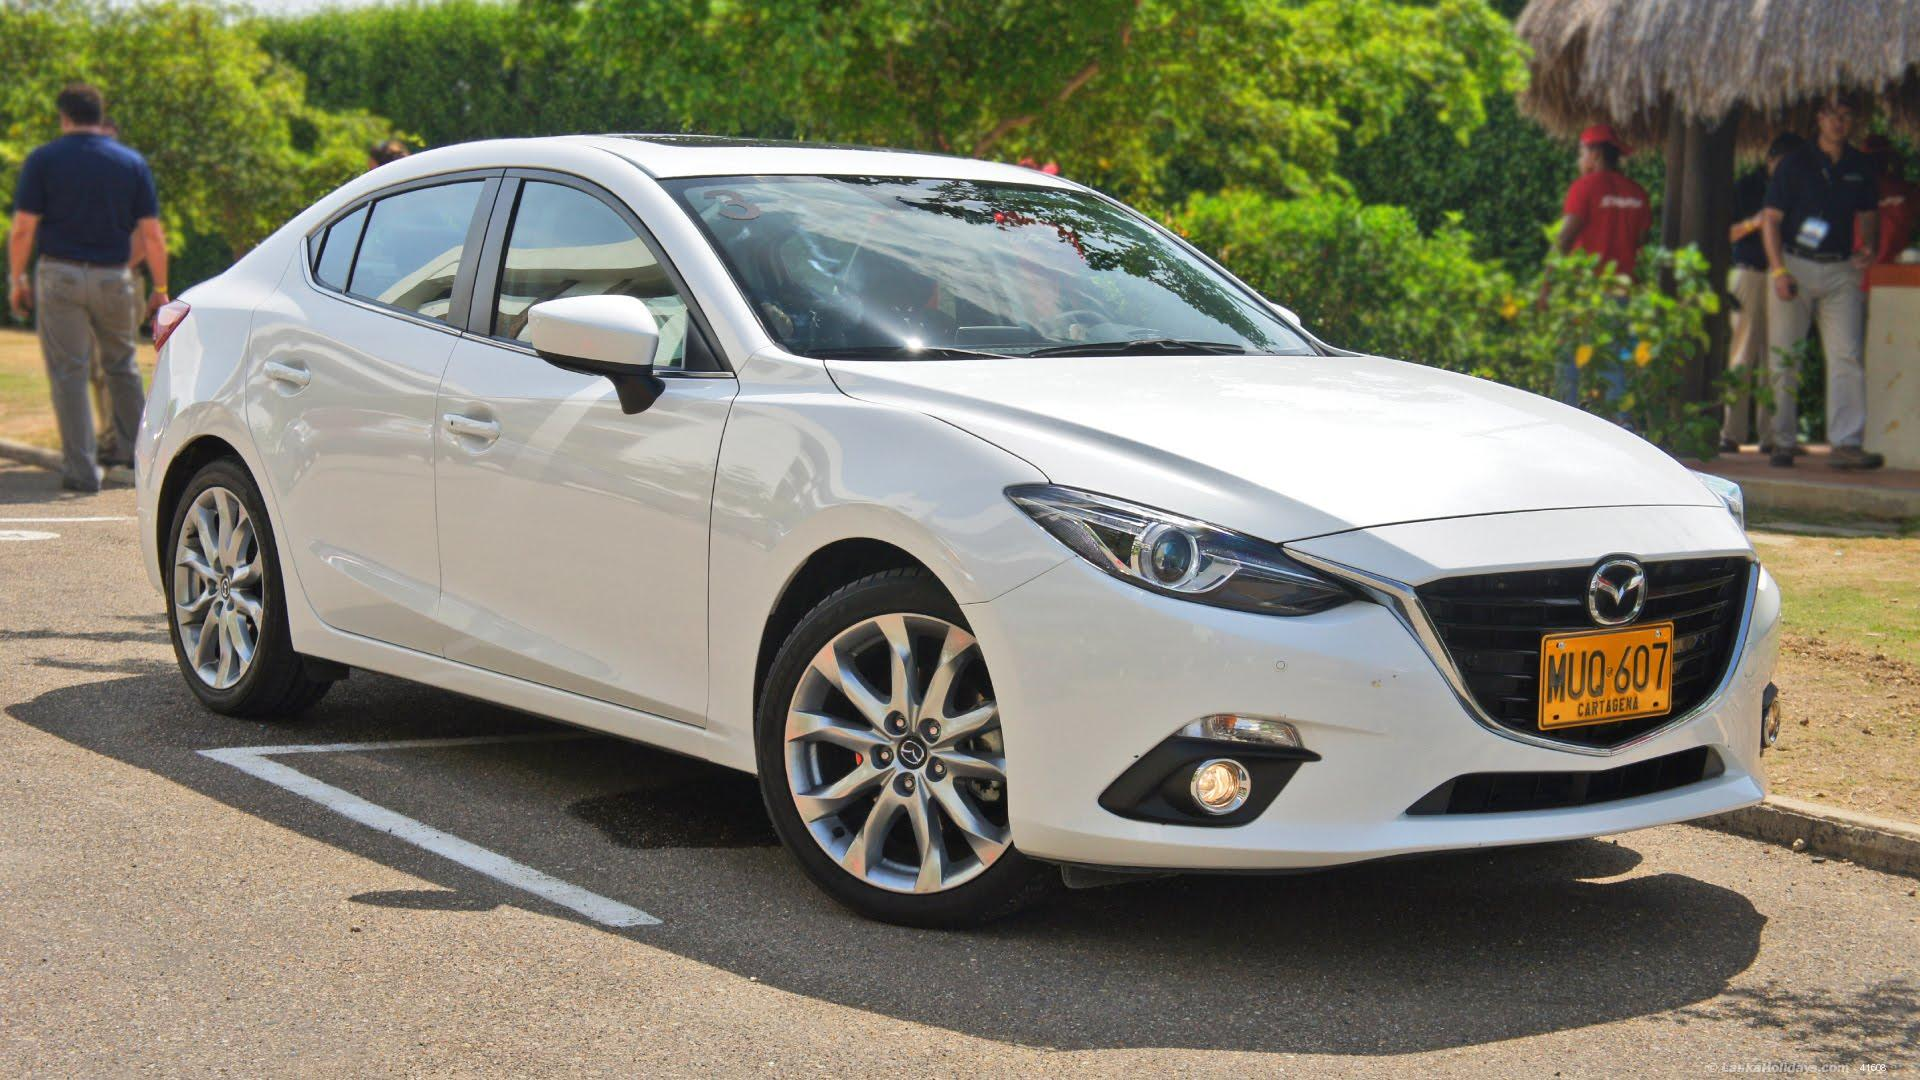 Sri Lanka Car Rentals Hire Wedding Hire Airport Hire Mazda Luxury